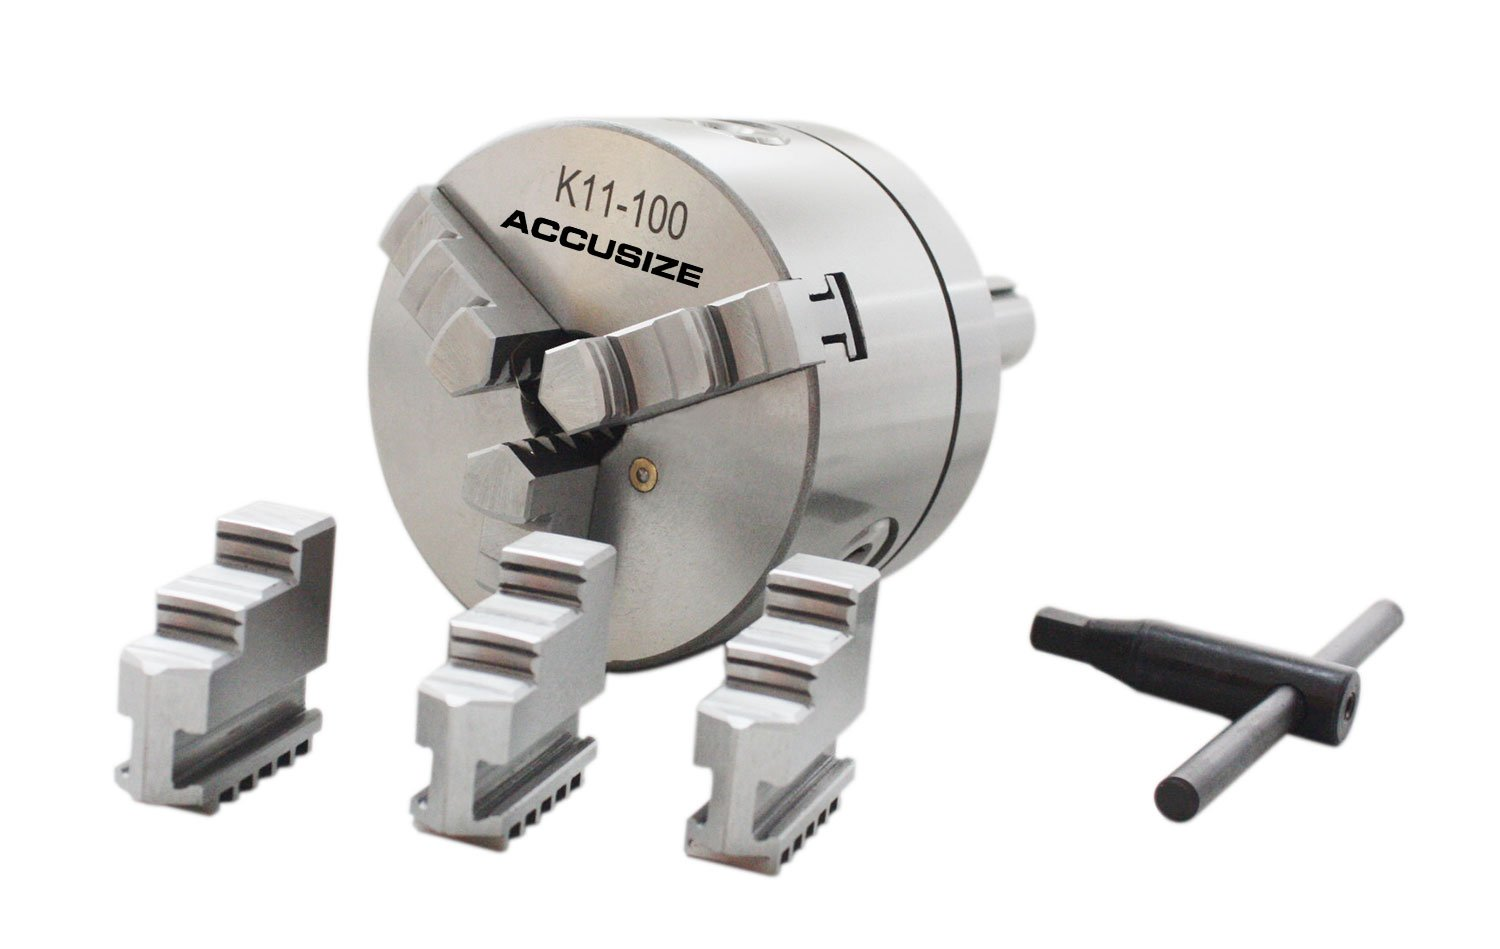 AccusizeTools - 4''/100mm R8 Precision Lathe Chuck, 3-Jaw Self Centering Scroll, #0225-0237 by Accusize Industrial Tools